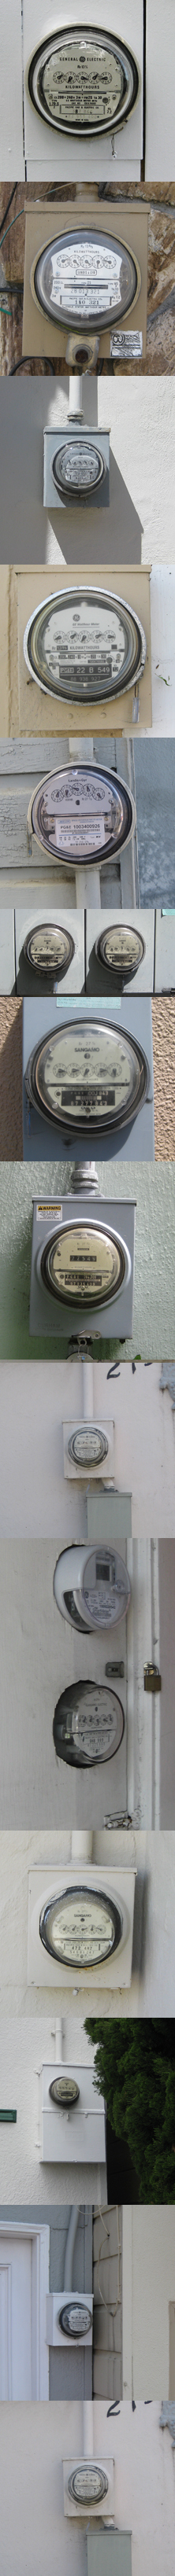 Analogue Meter Vs Smart Meters : Where have all the analogs gone stop smart meters